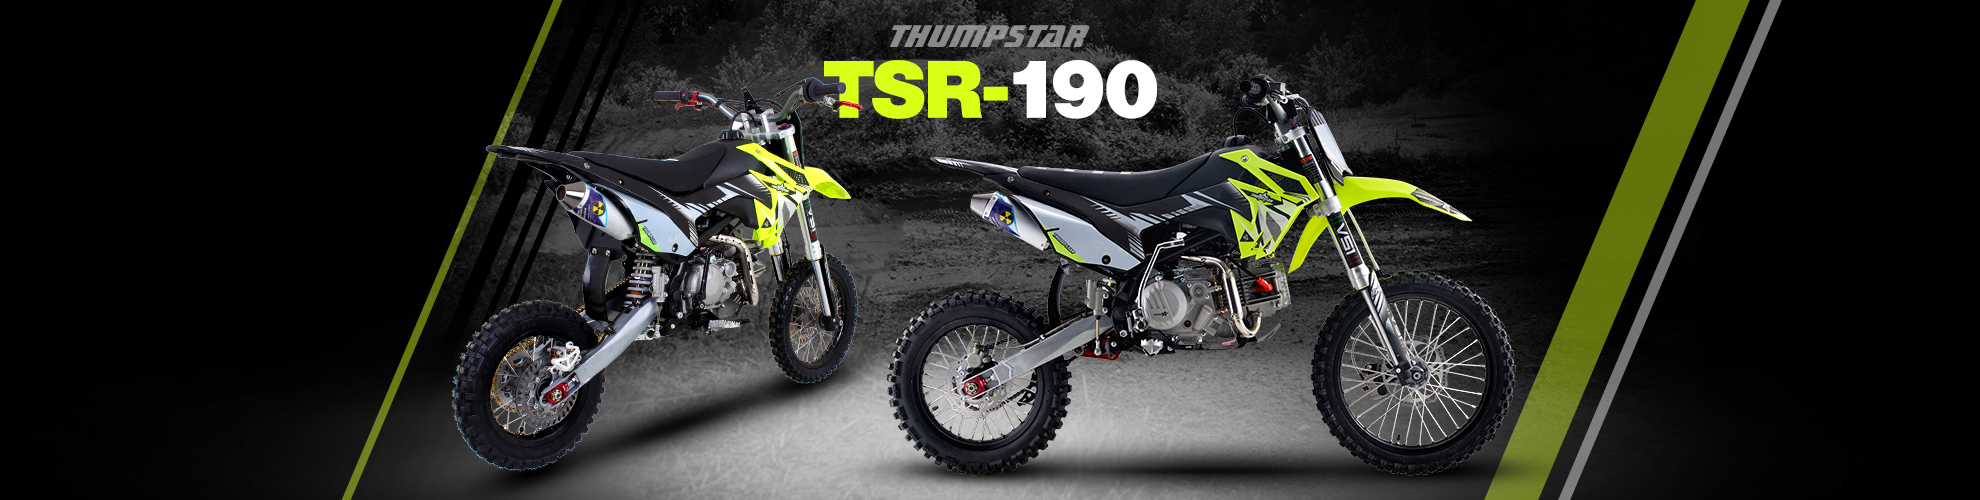 Thumpstar - TSR 190cc DAYTONA Banner for Desktop